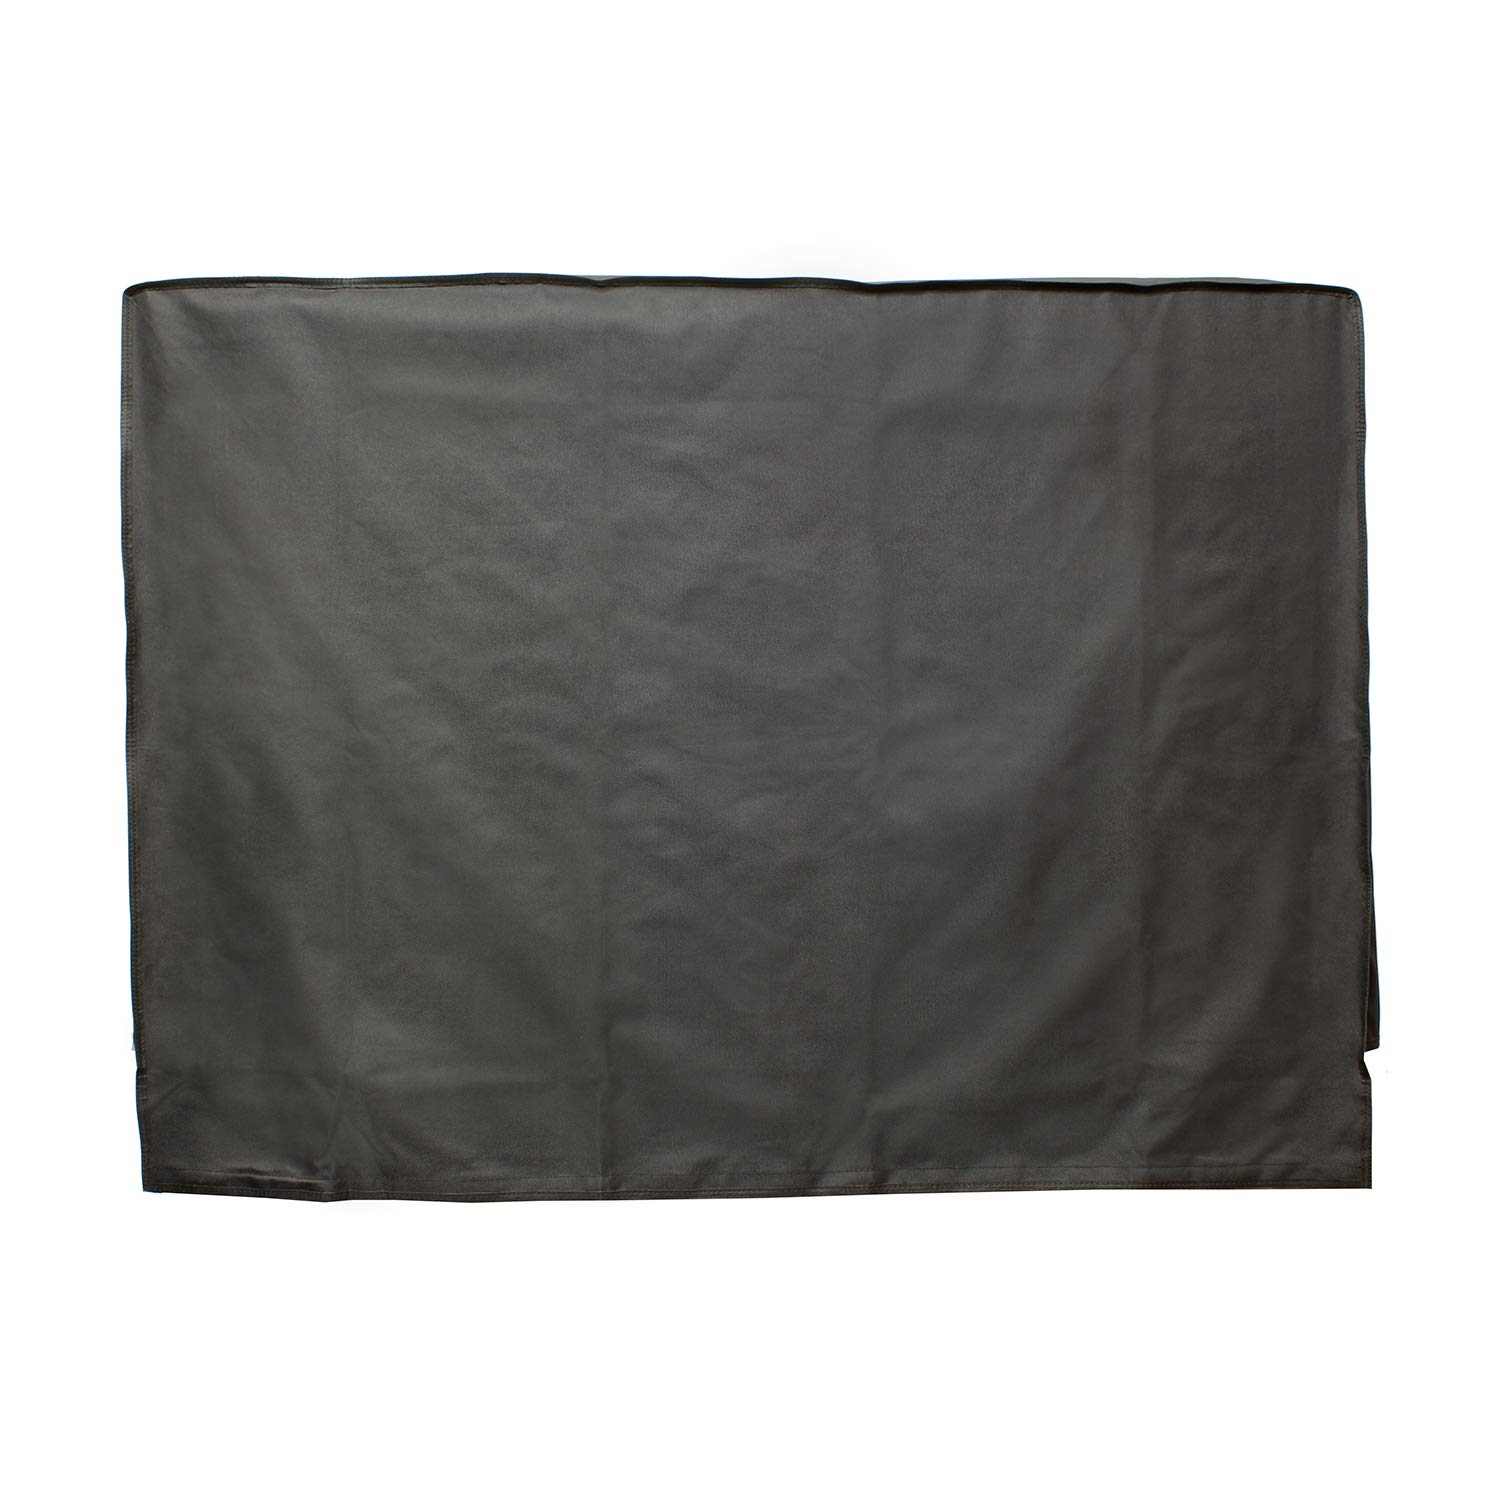 7Penn | Outdoor TV Covers Weatherproof TV Covers Outdoor 55 Inch TV Cover Outdoor Television Covers for Outside 55 Inch by 7Penn